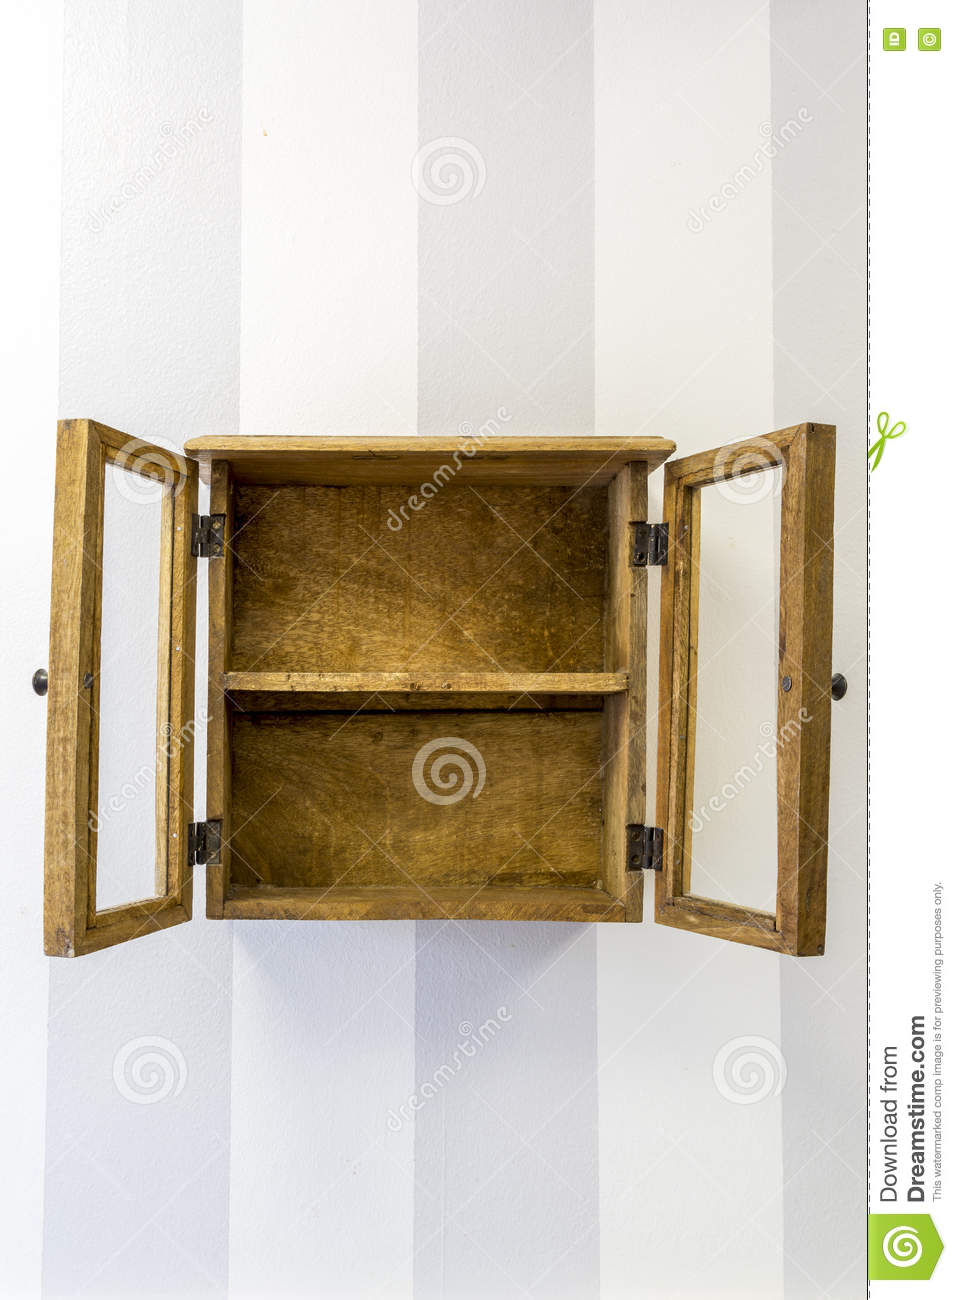 royaltyfree stock photo download empty rustic wall mounted display cabinet